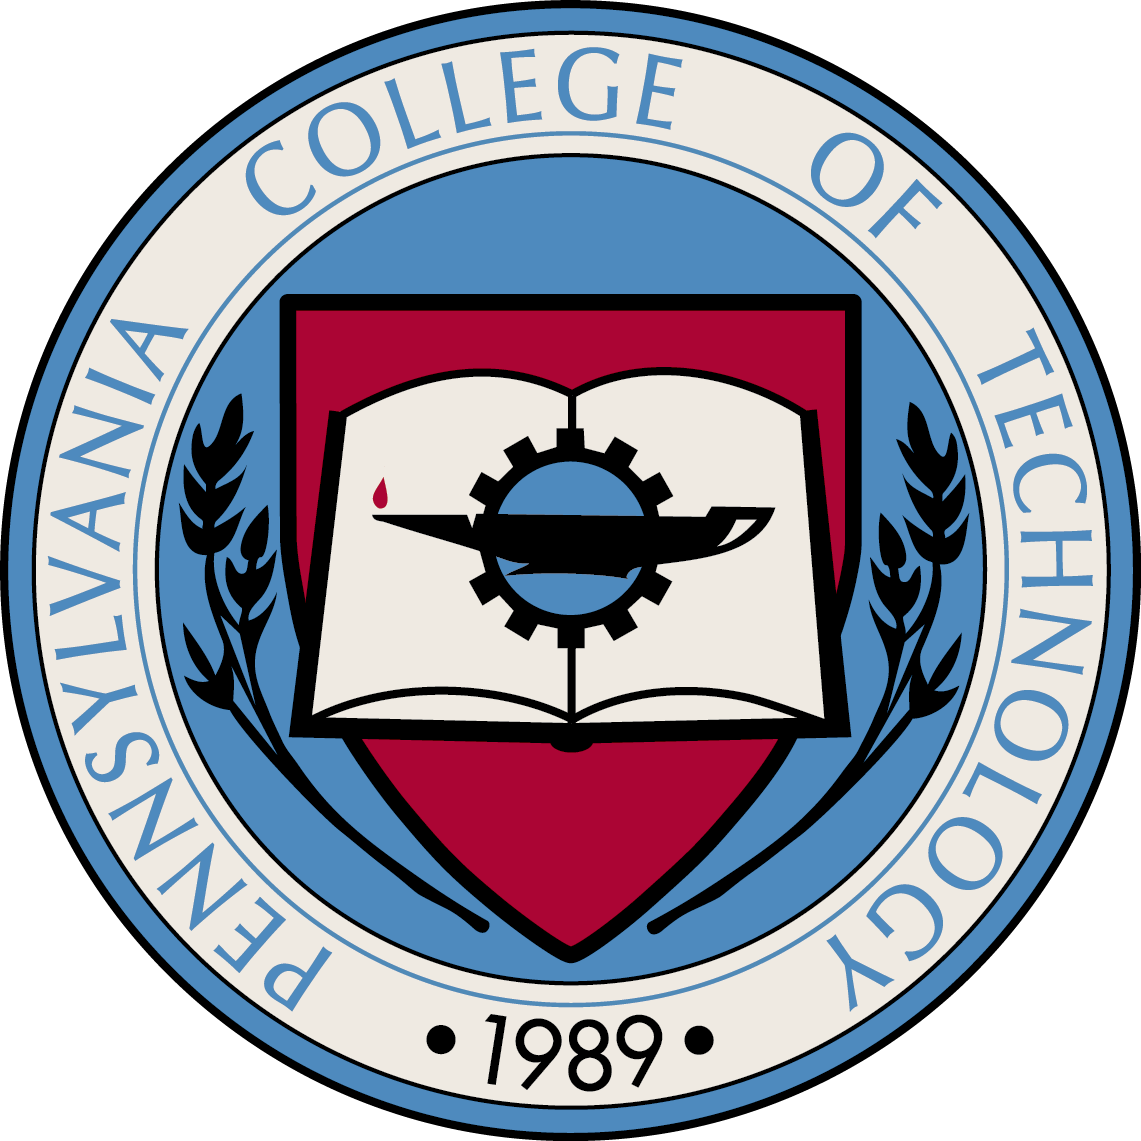 https://sites.psu.edu/pathwaystoemployment/files/2017/02/College-Seal_4c_process-153sbod.png